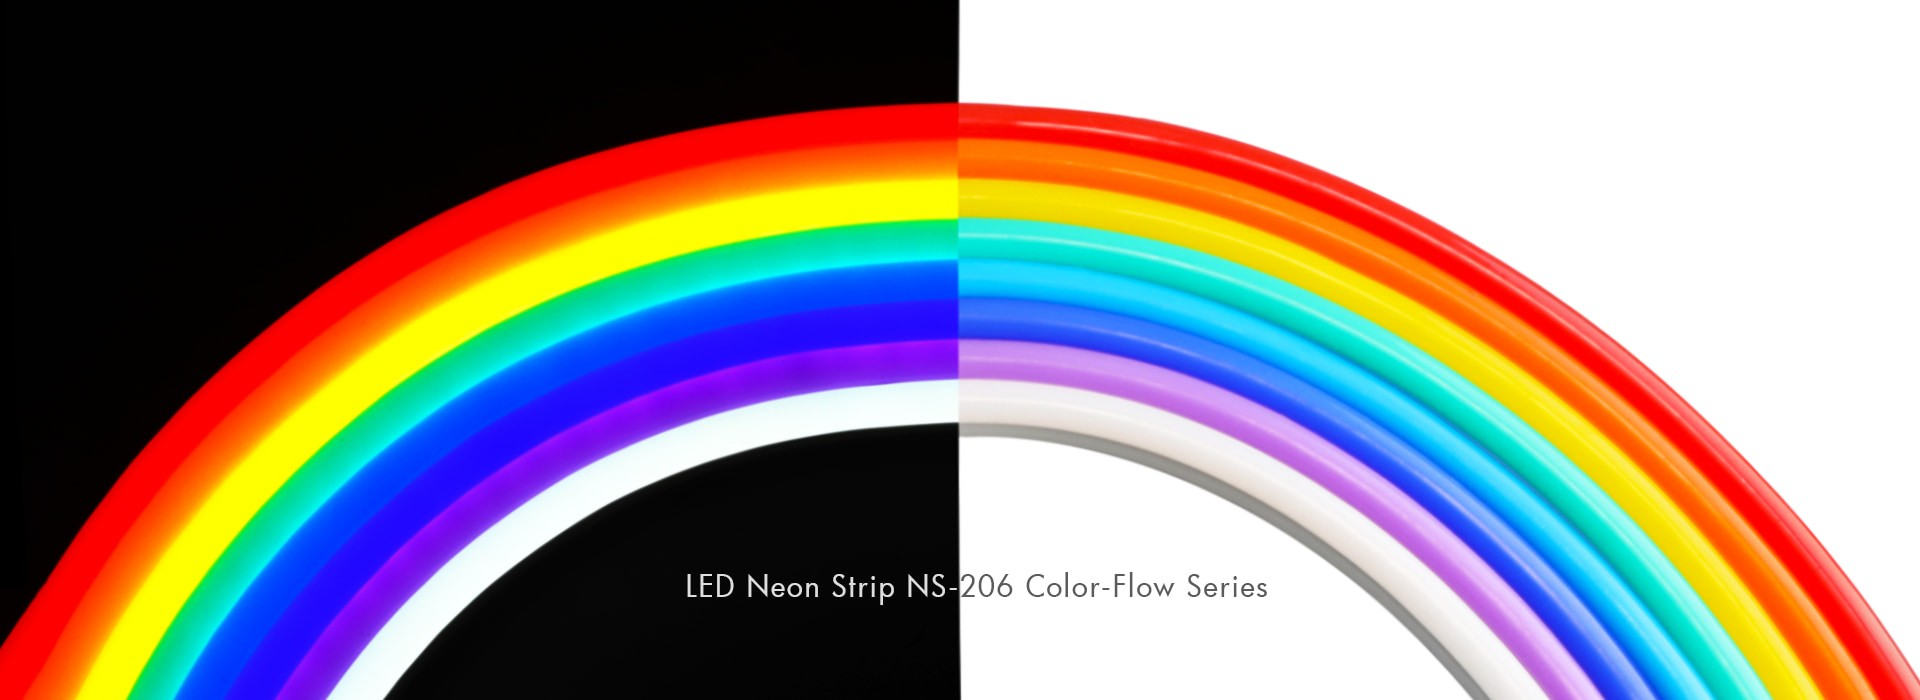 LED Neonlicht Color-Flow Serie NS-206